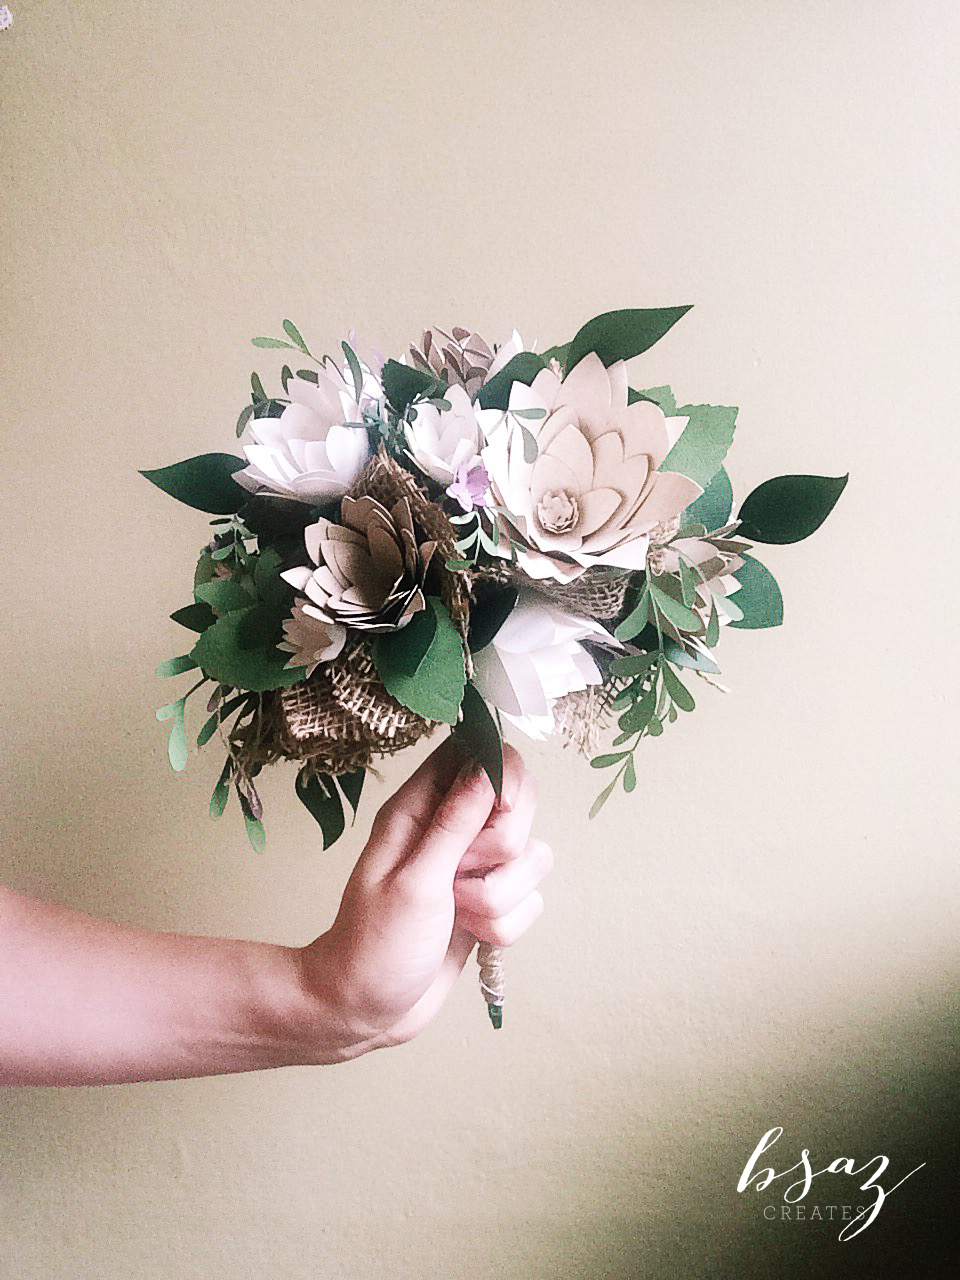 BSaz Creates Paper Floral Wedding Bouquet